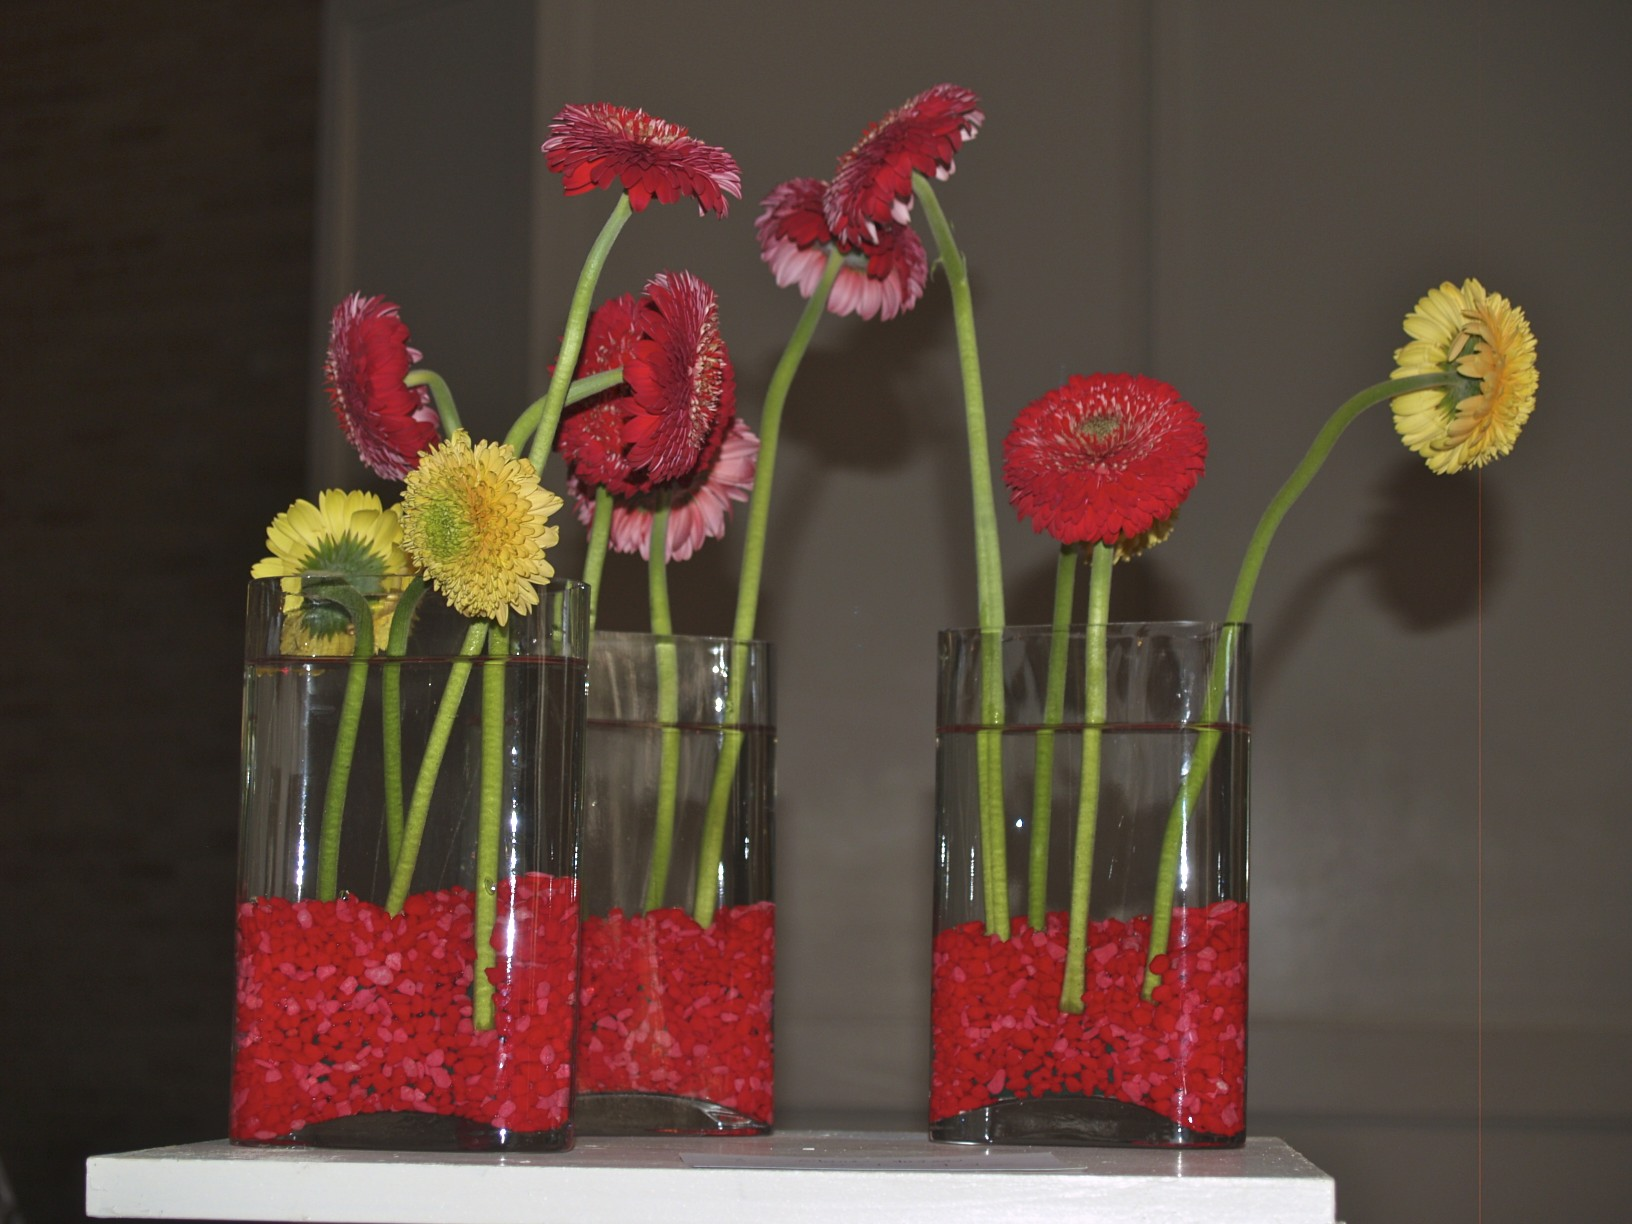 flower arranging, gerbera daisy